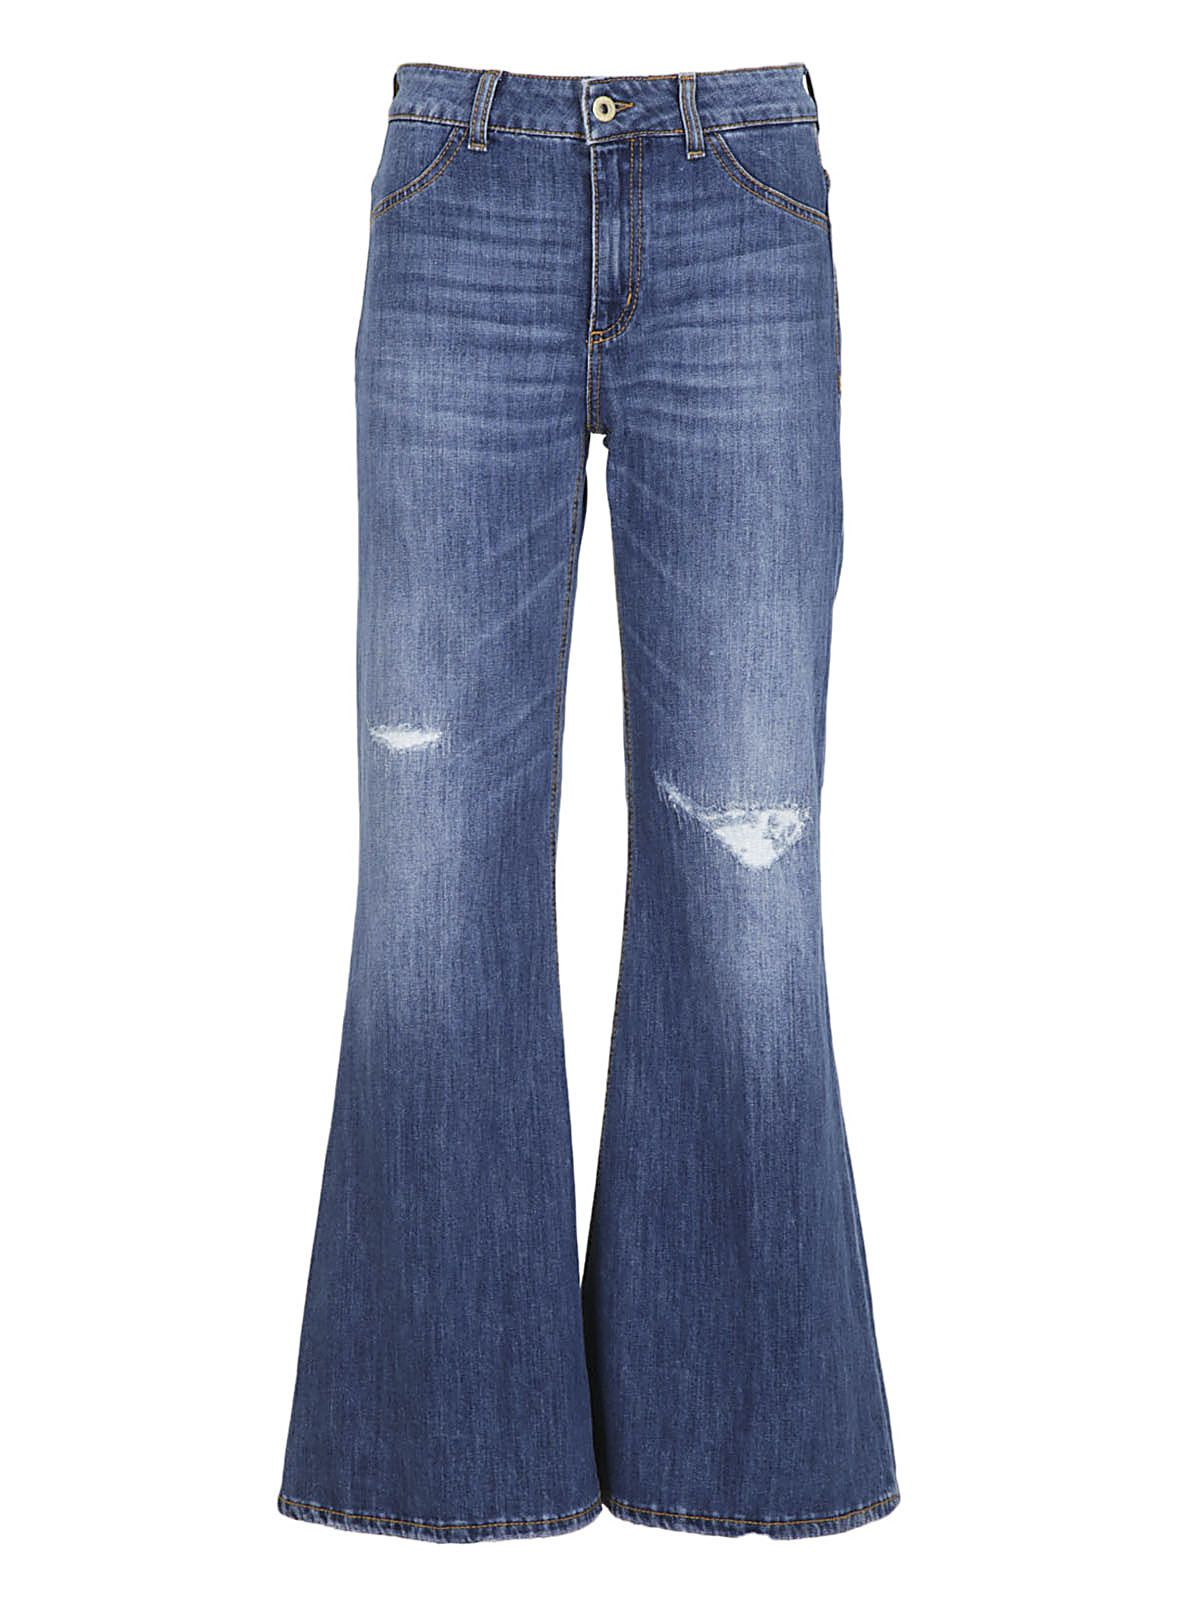 Dondup Flared Distressed Jeans